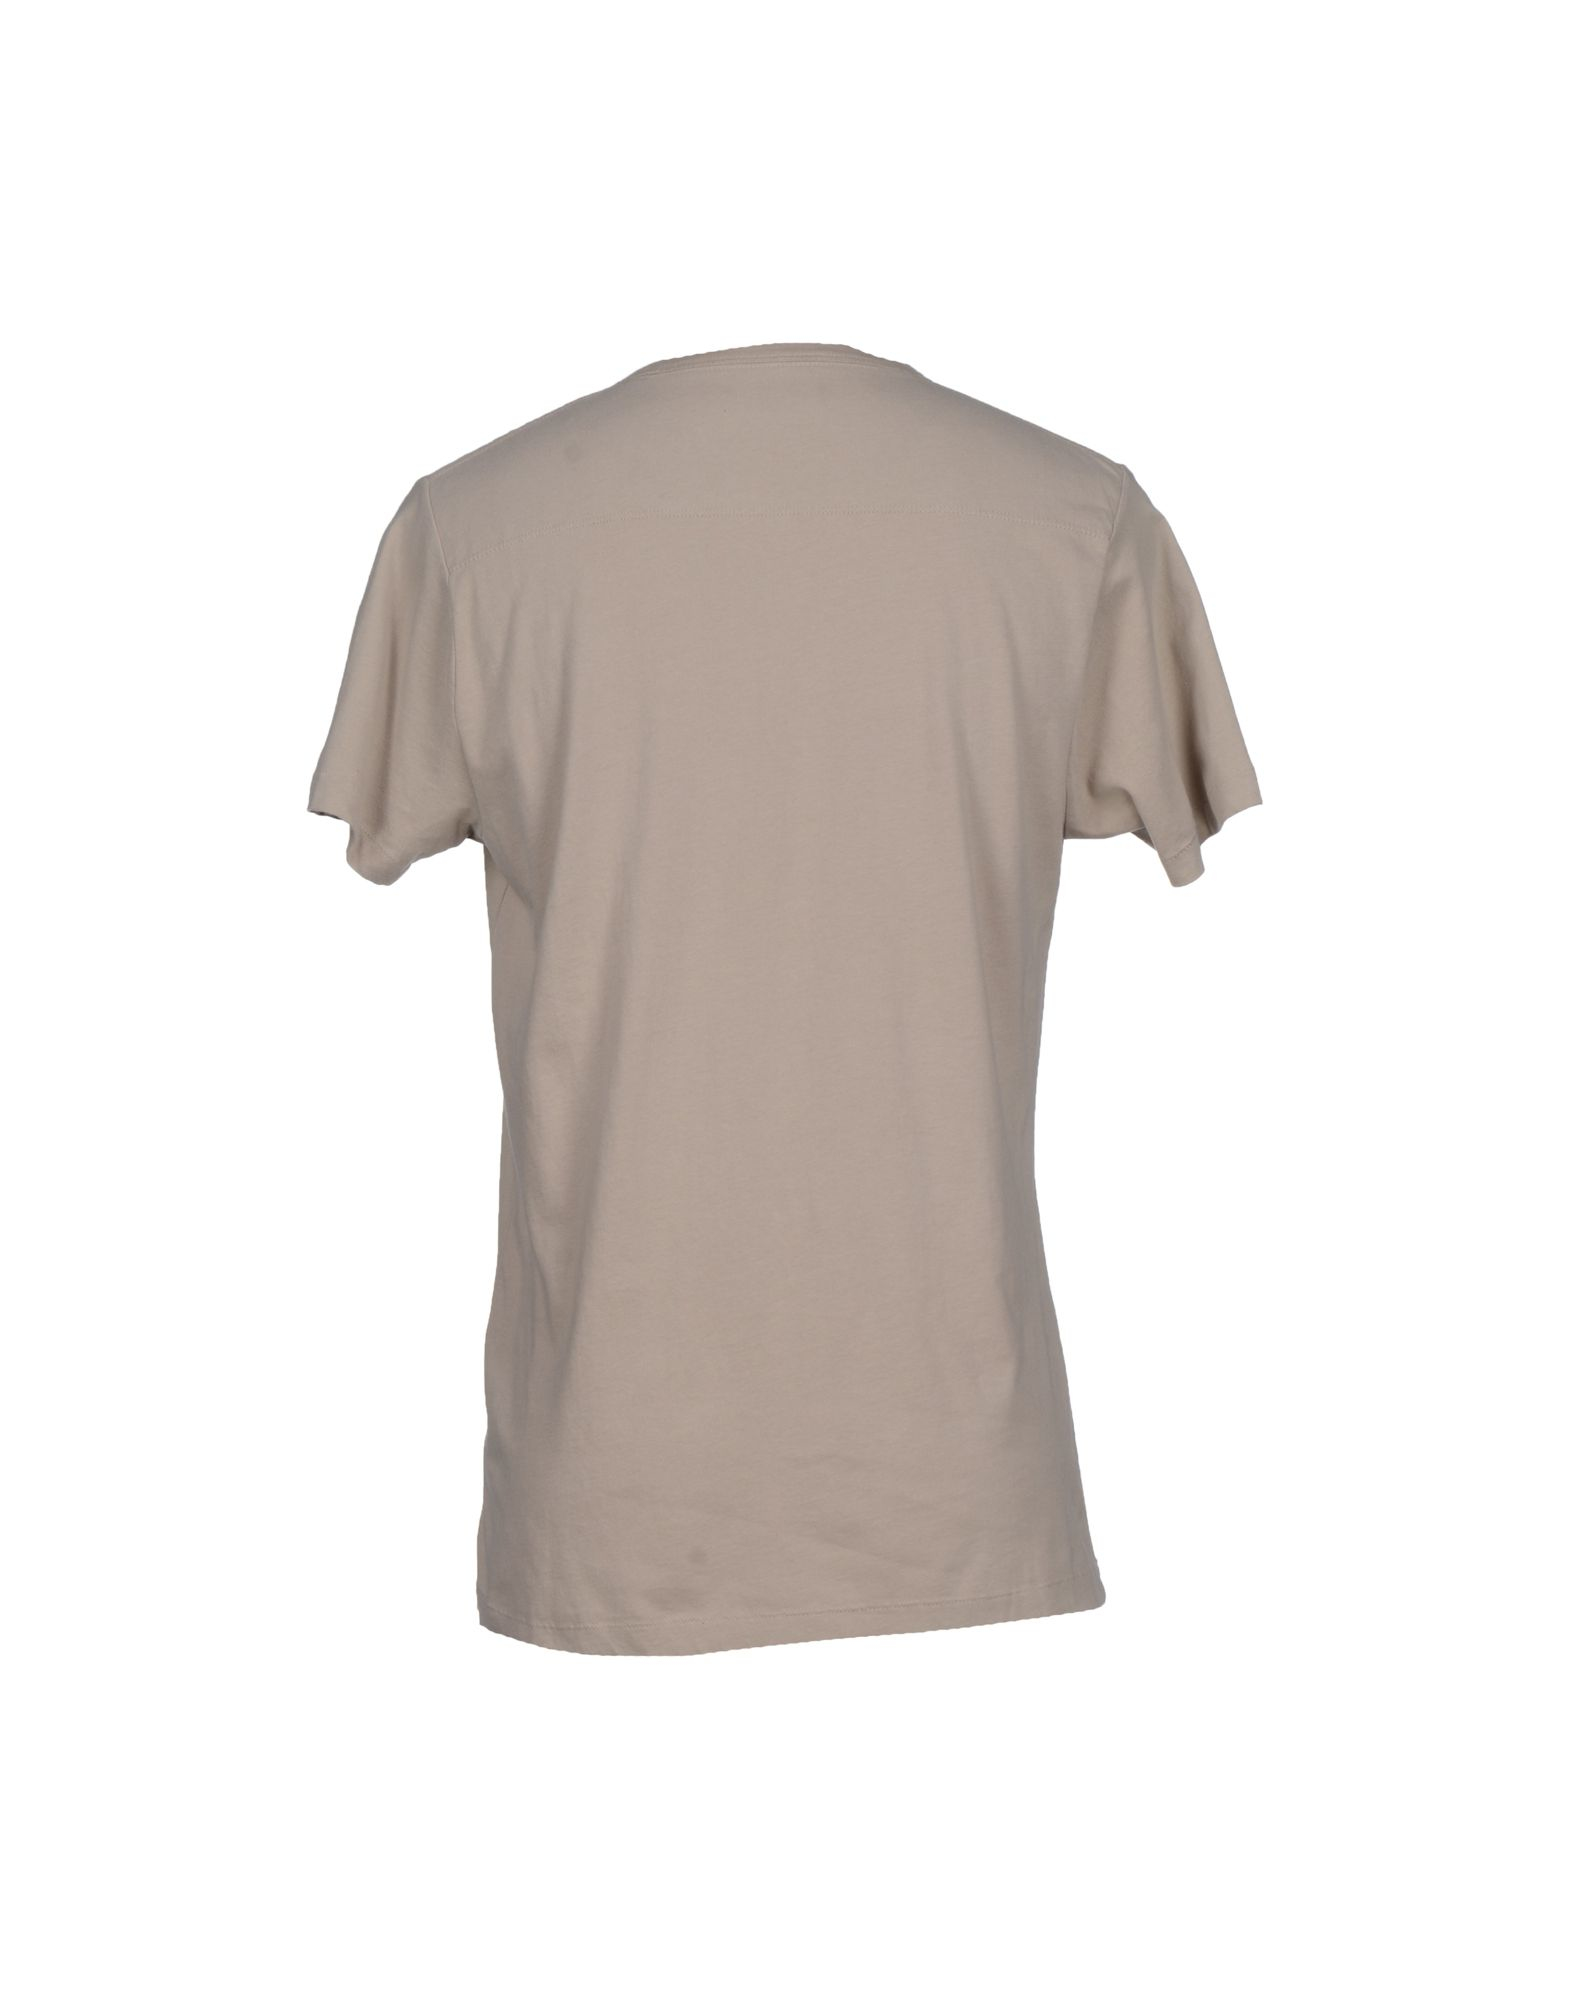 Lyst french connection t shirt in natural for men for French connection t shirt dress